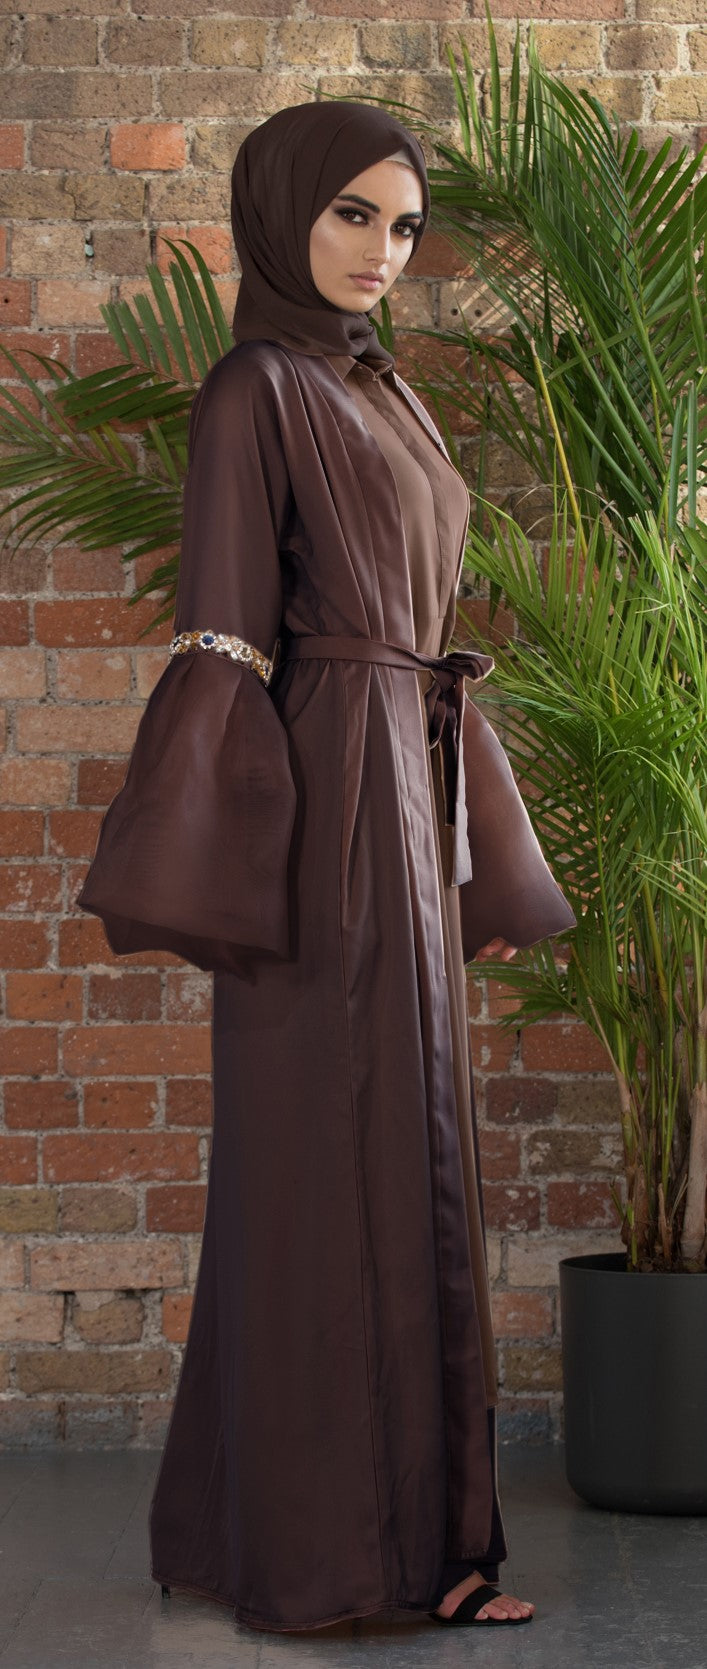 Aaliya Collections Myra Abaya gorgeous brown shade with statement organza sleeves and contrasting stonework